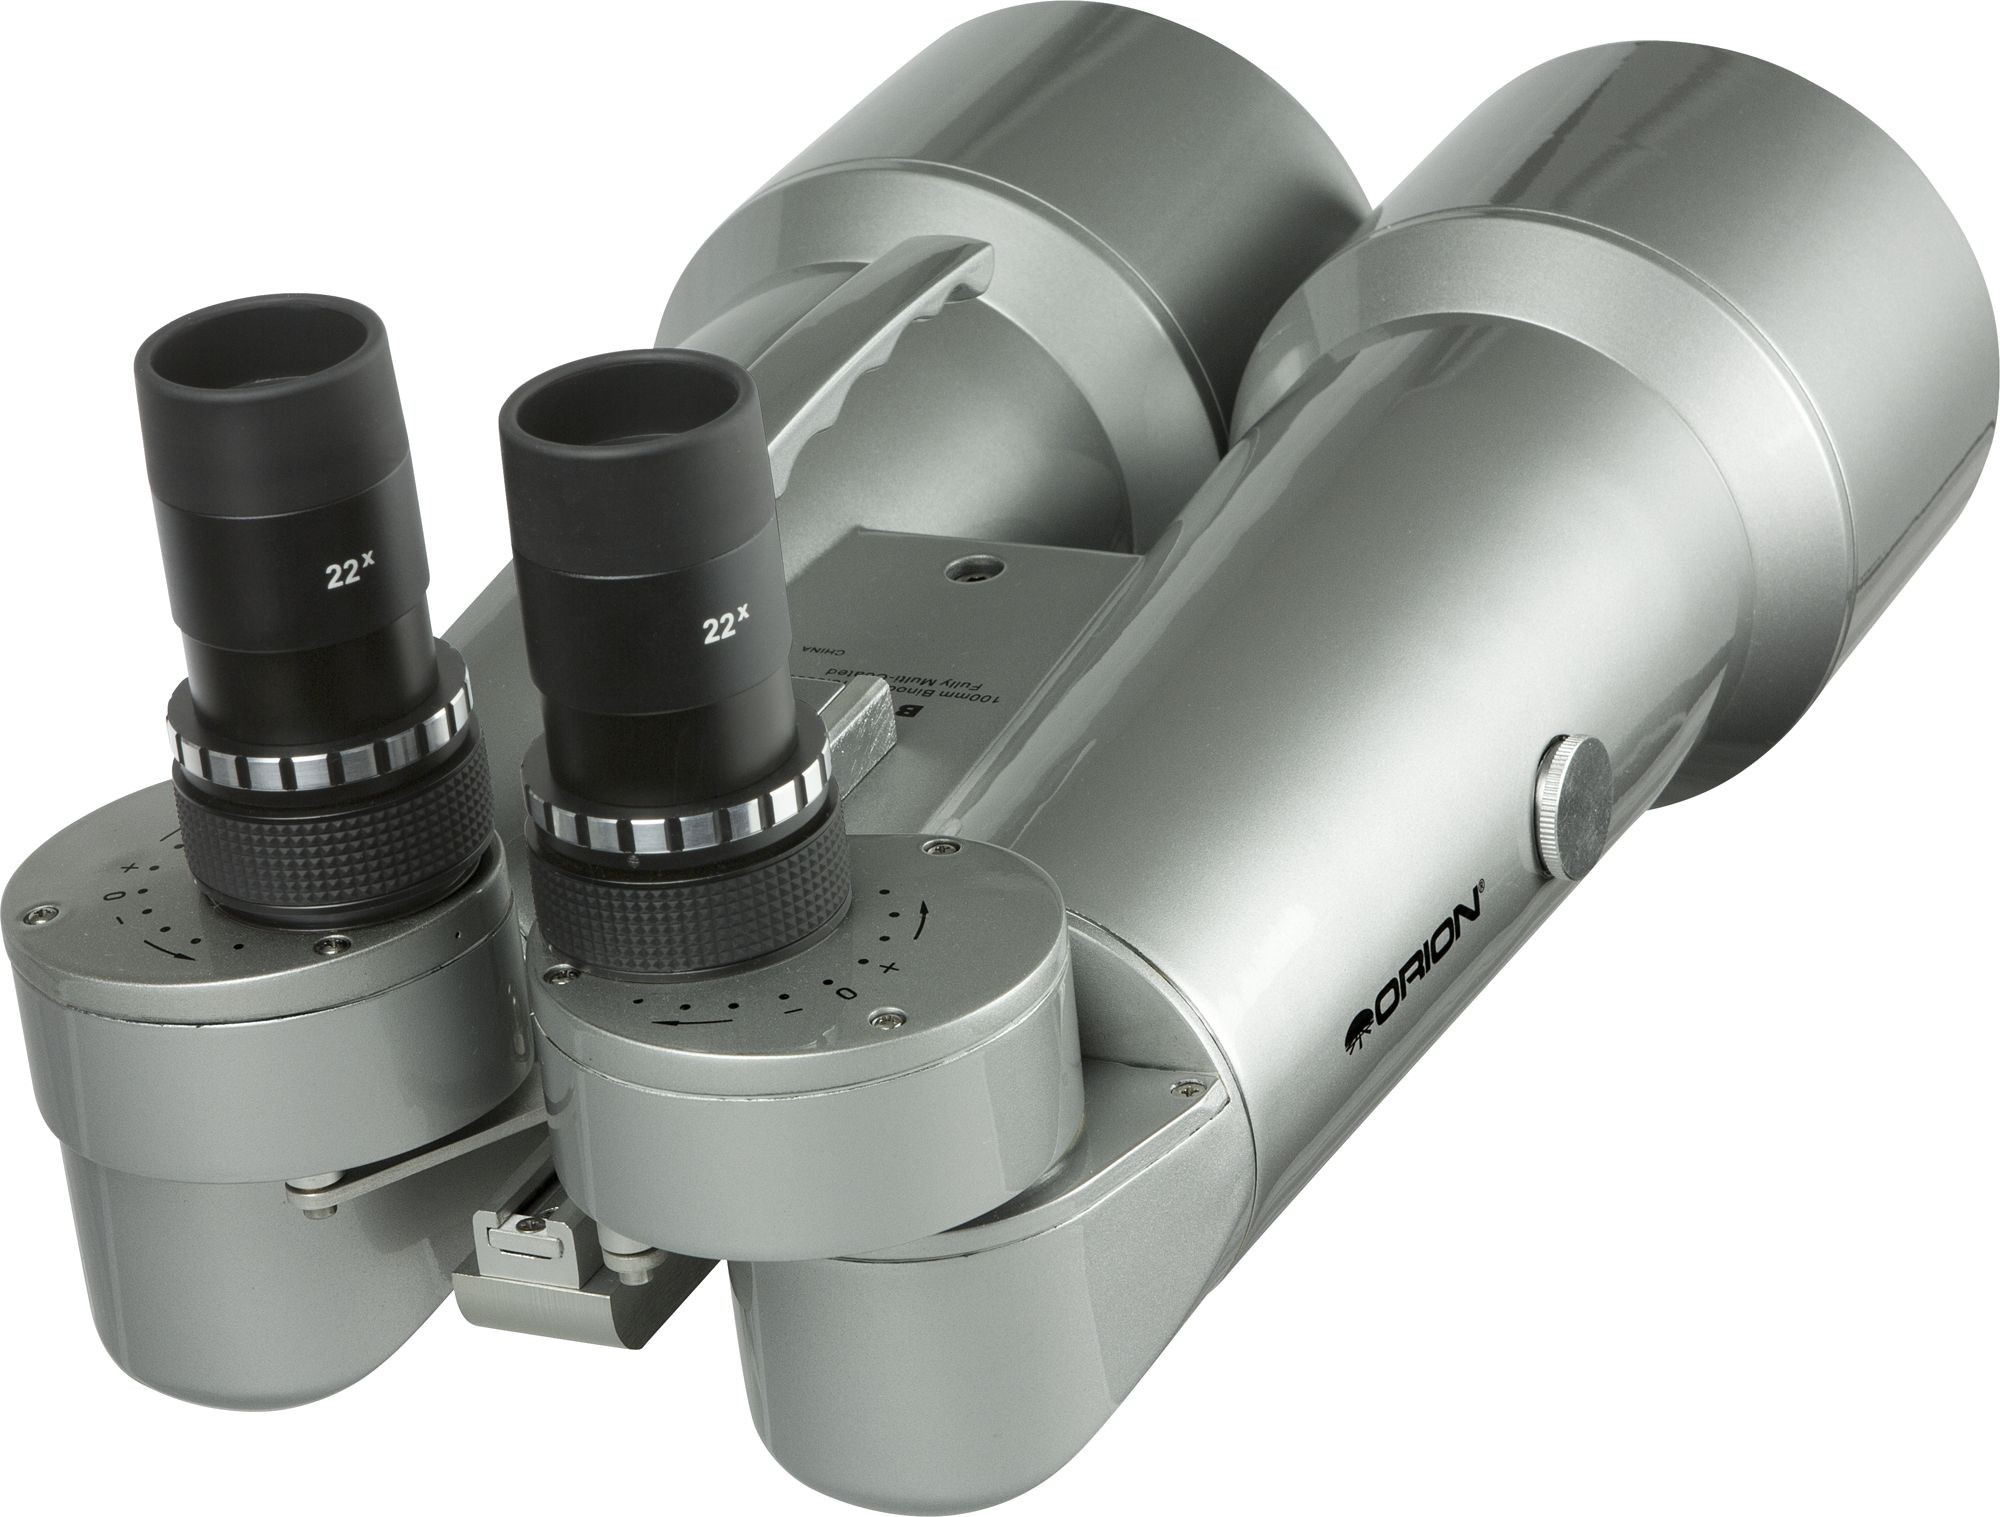 Orion BT100 Premium Binocular Telescope with 22x magnification.